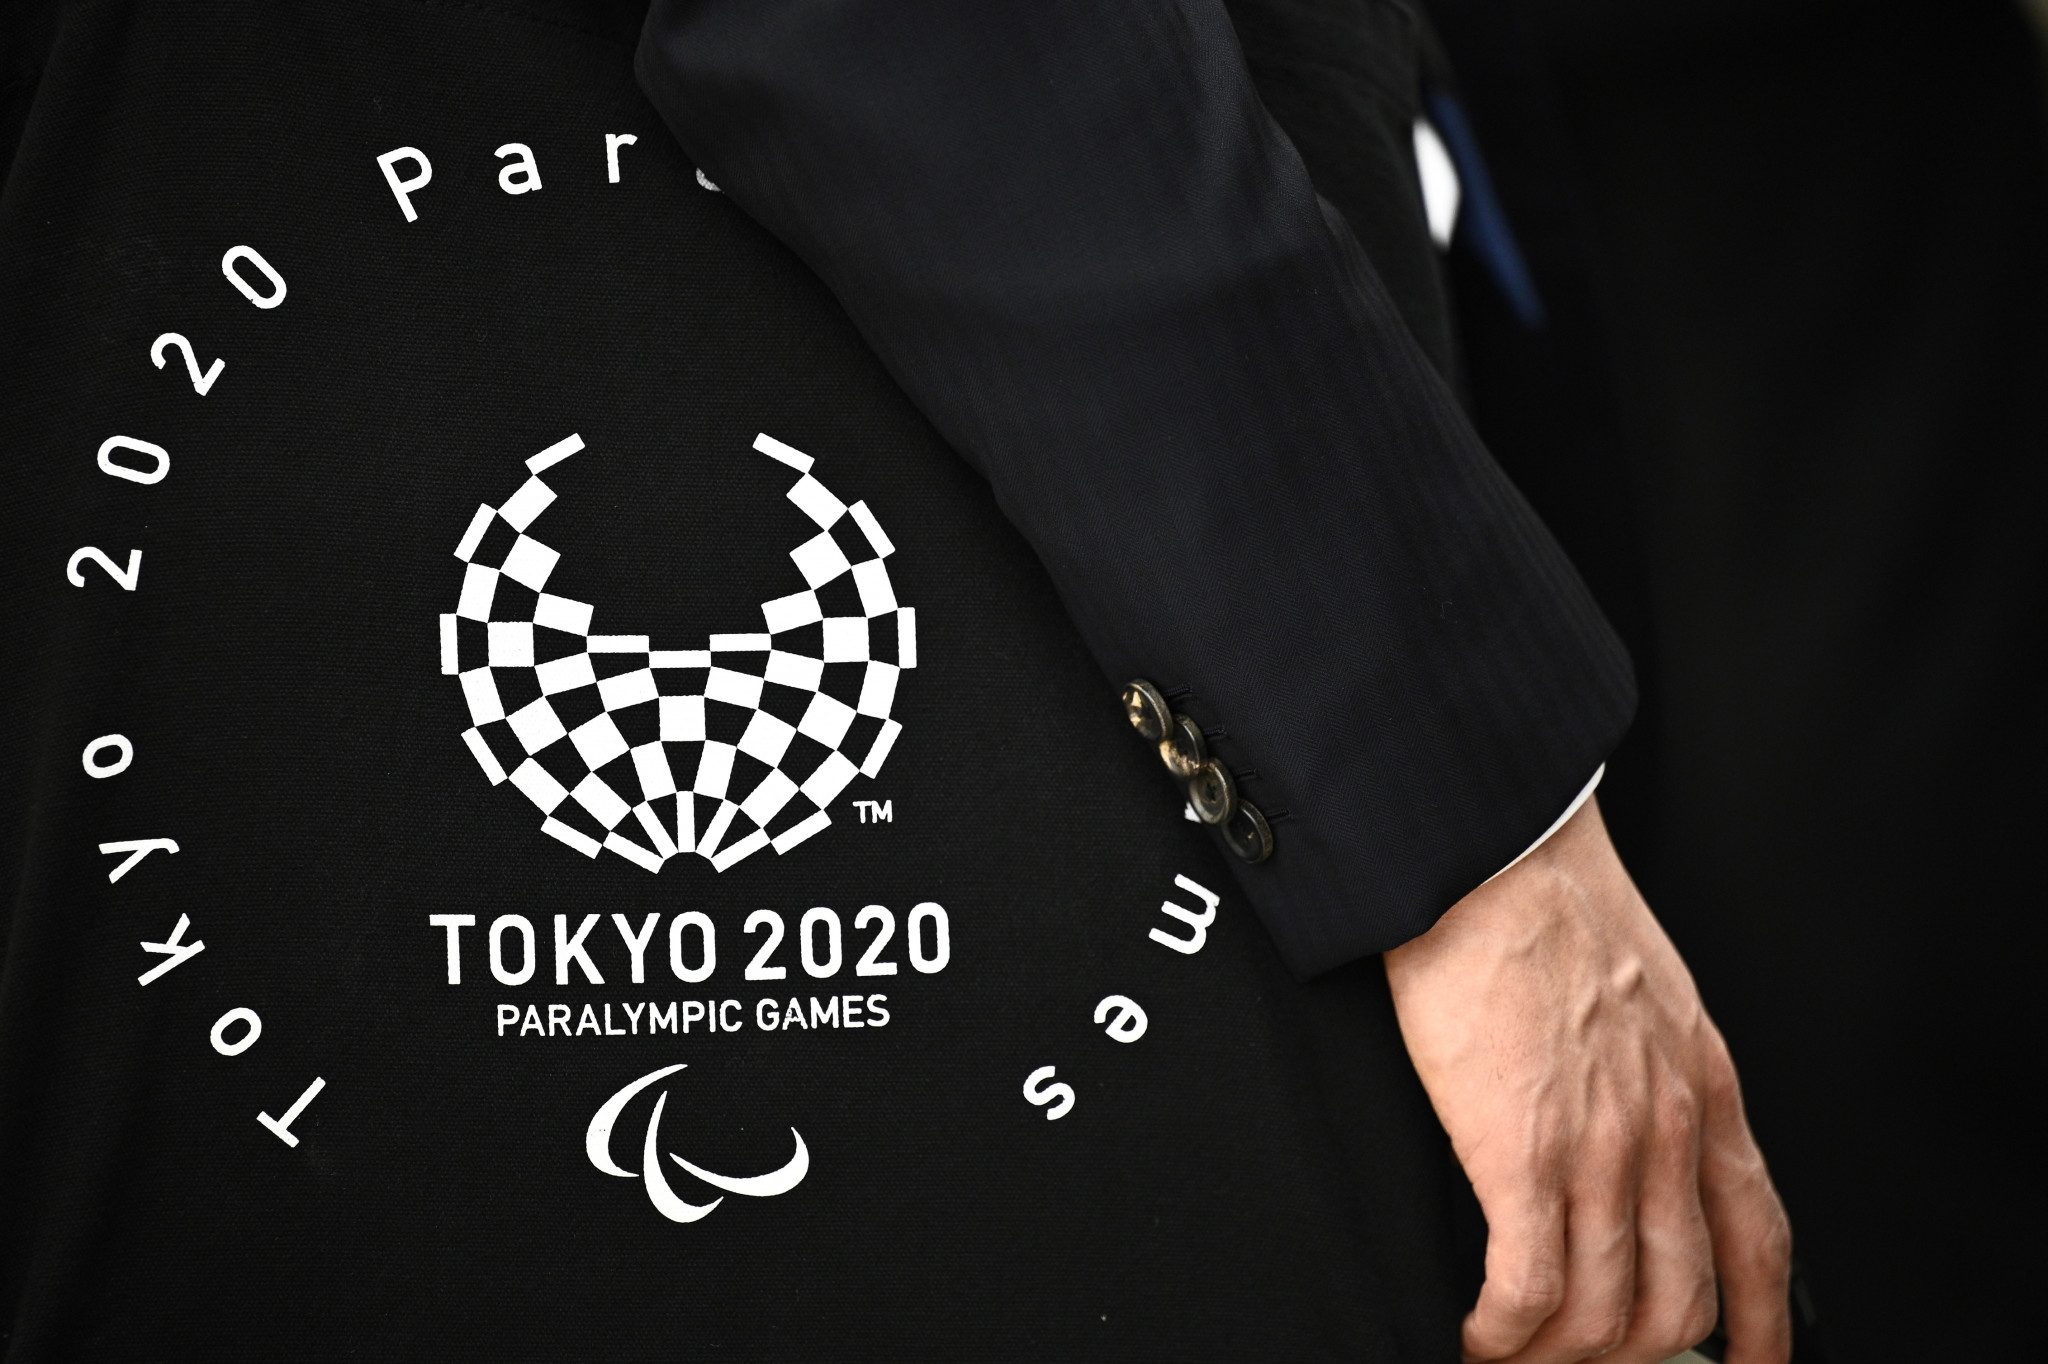 Japanese Paralympic groups reportedly hold concerns over Tokyo 2020